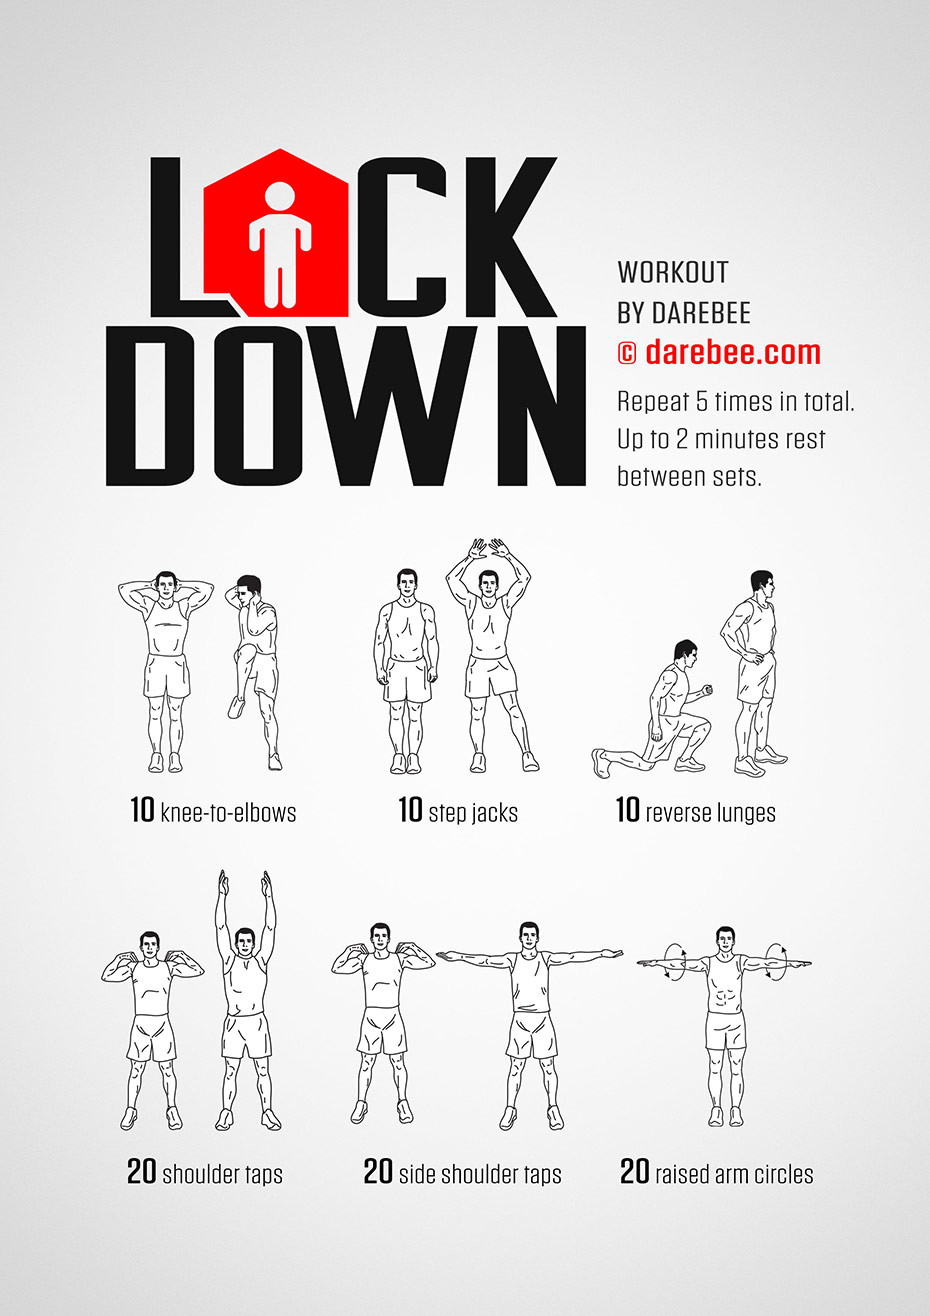 At home exercise idea